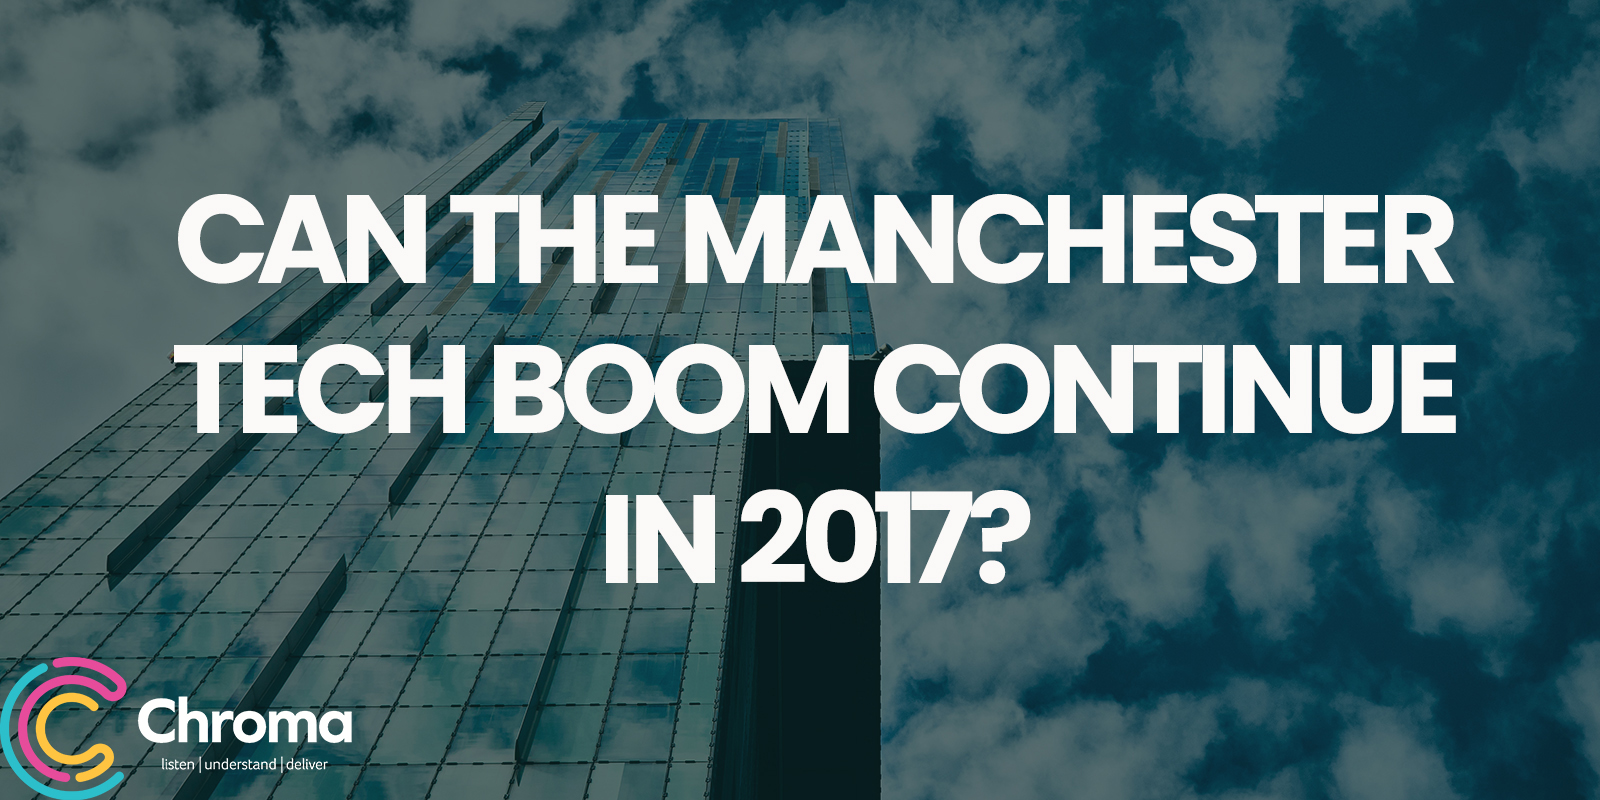 Can the Manchester Tech Boom Continue in 2017?